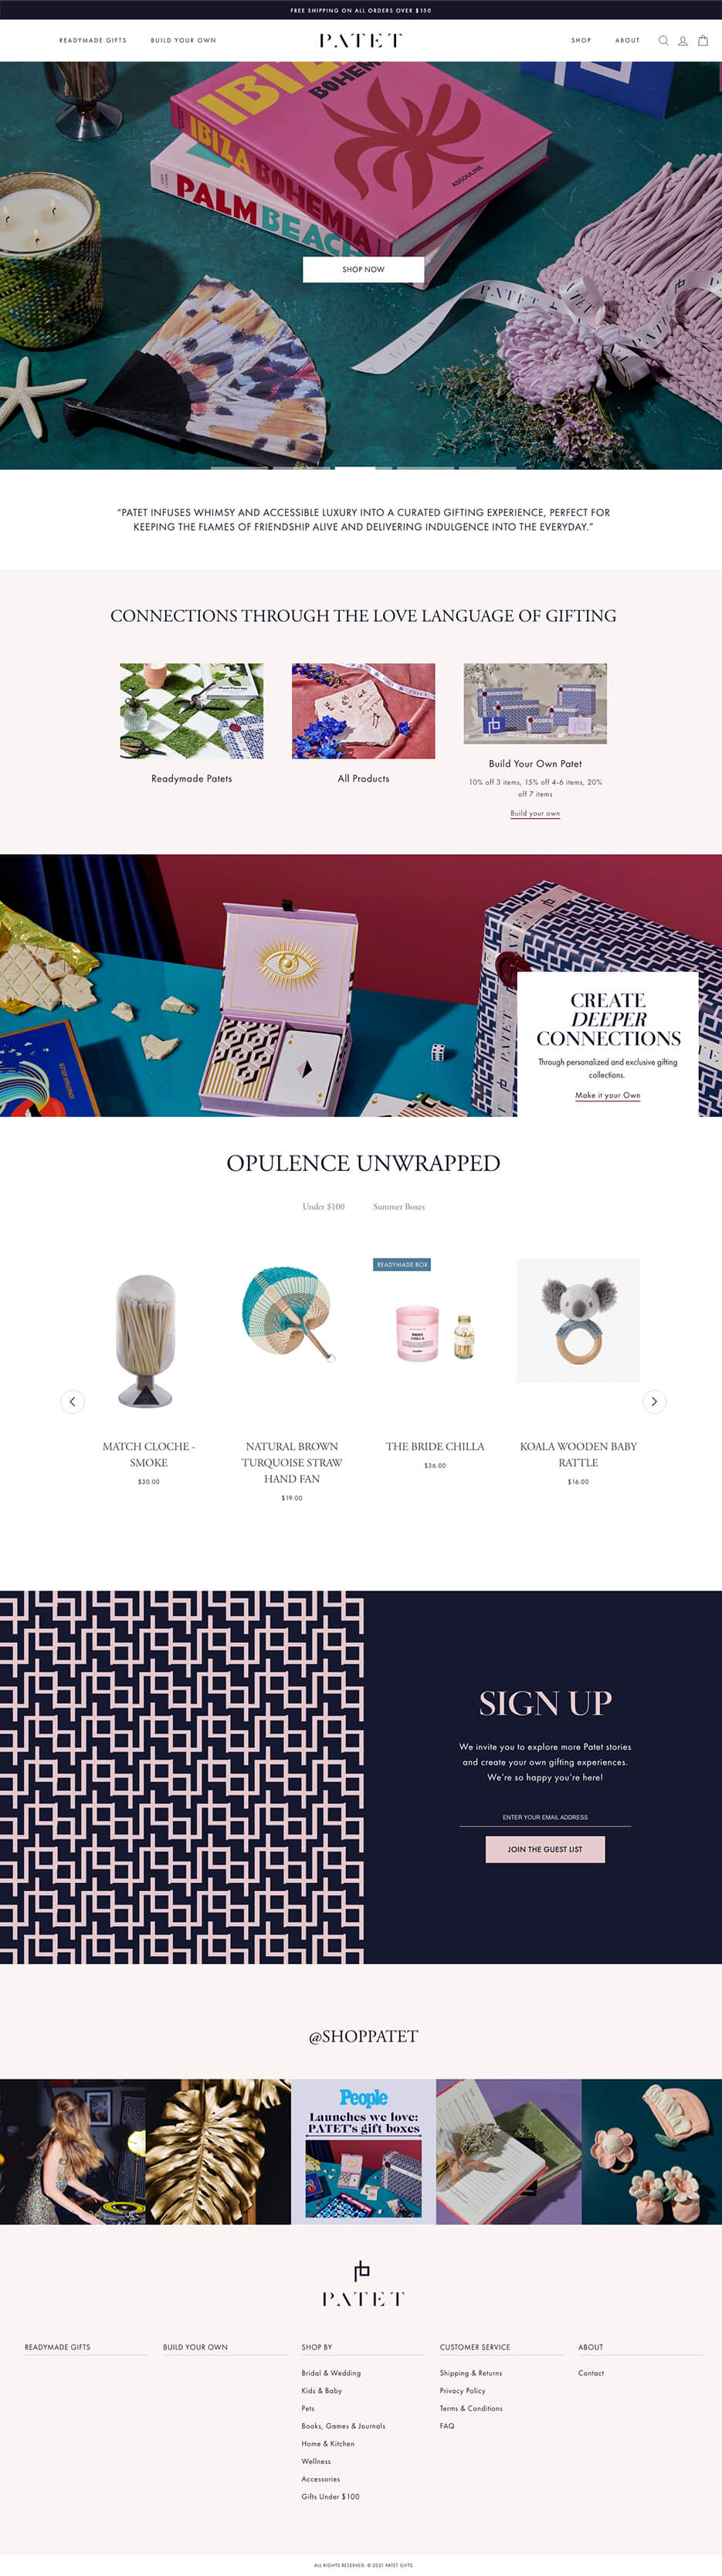 Thumbnail for Online store selling customized gift boxes